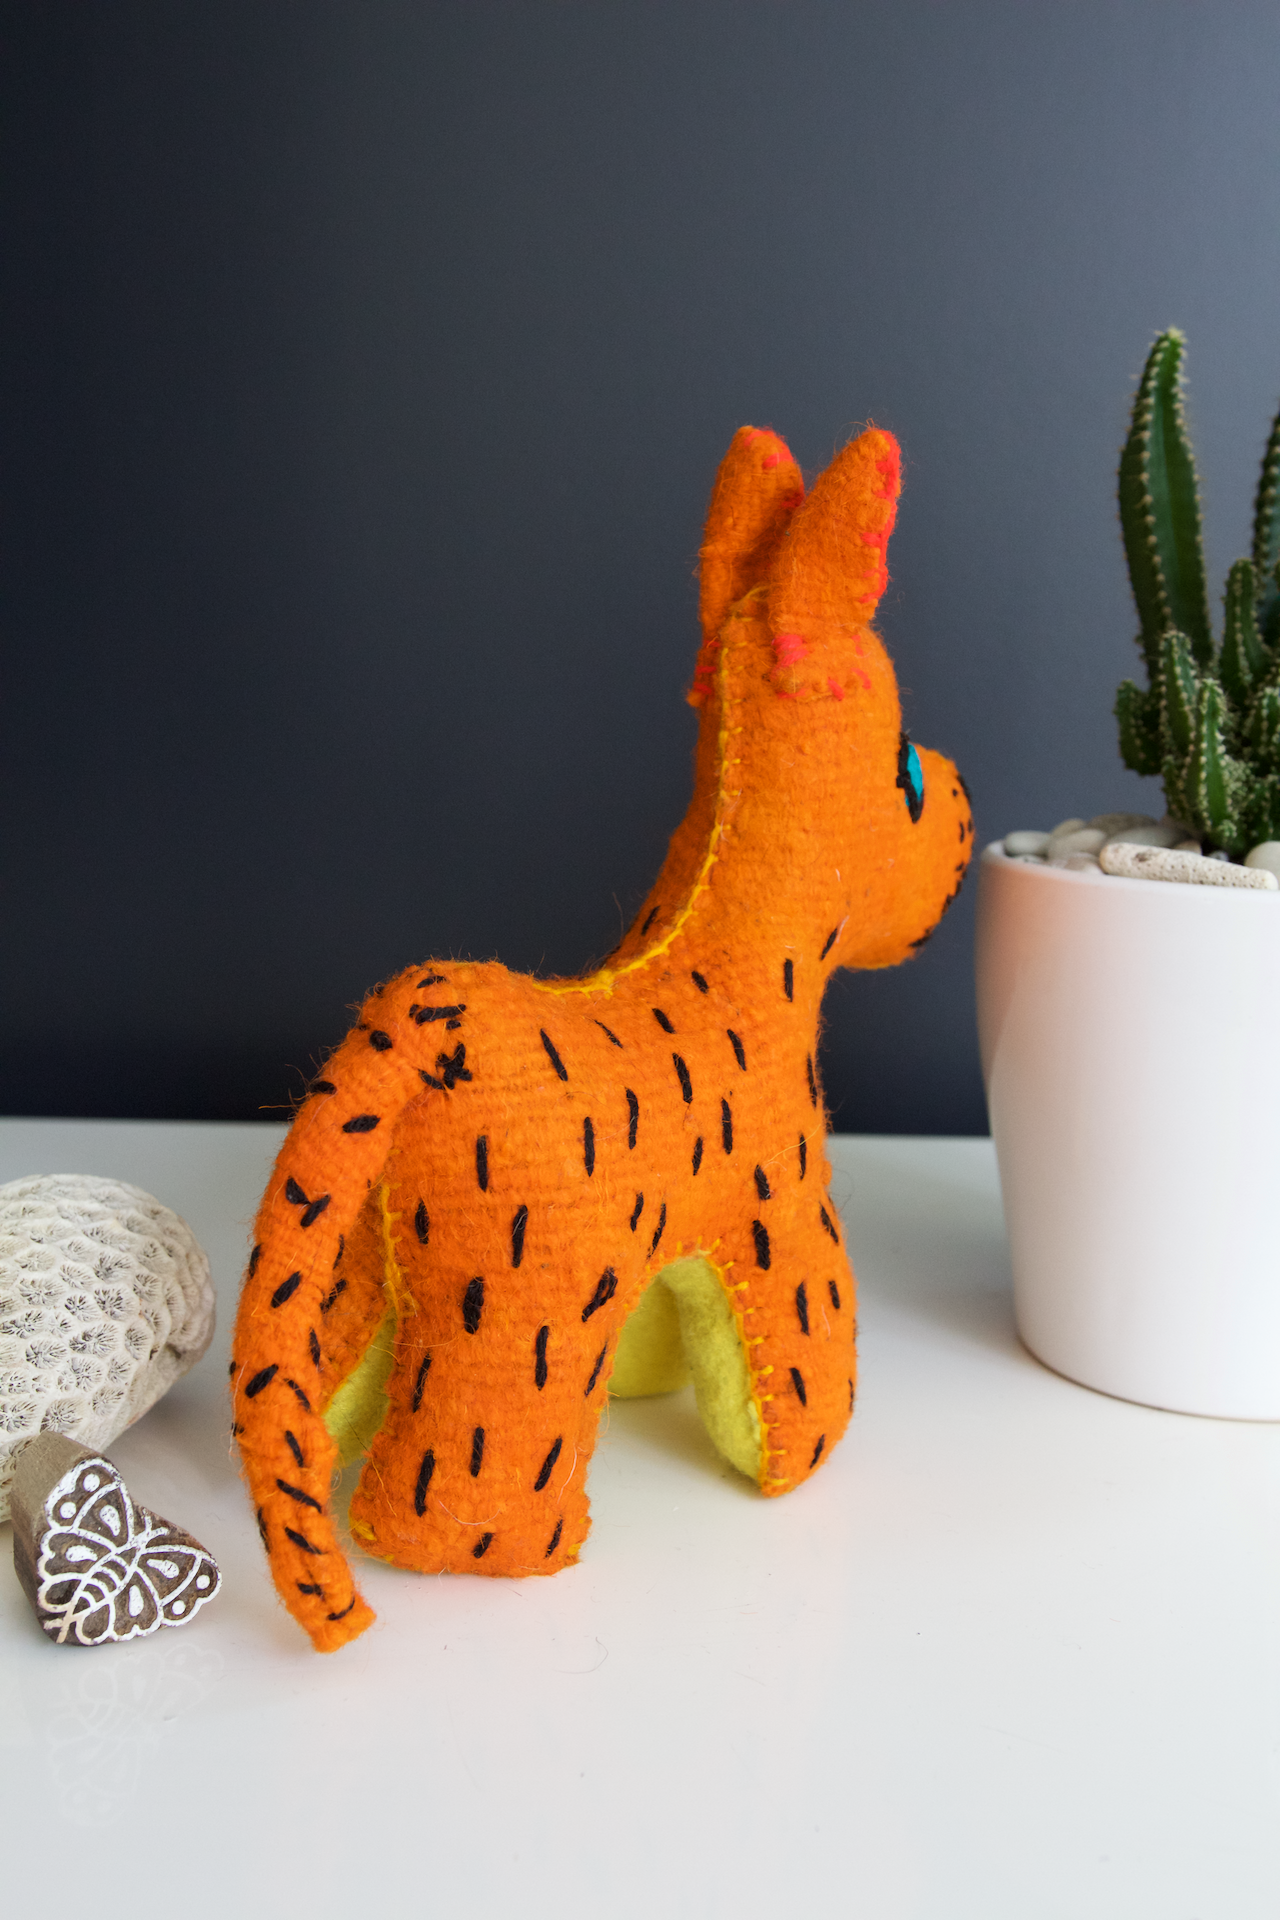 Animalito Leopard 02  Decor Orange - Cielo Collective handmade Mexico Guatemala